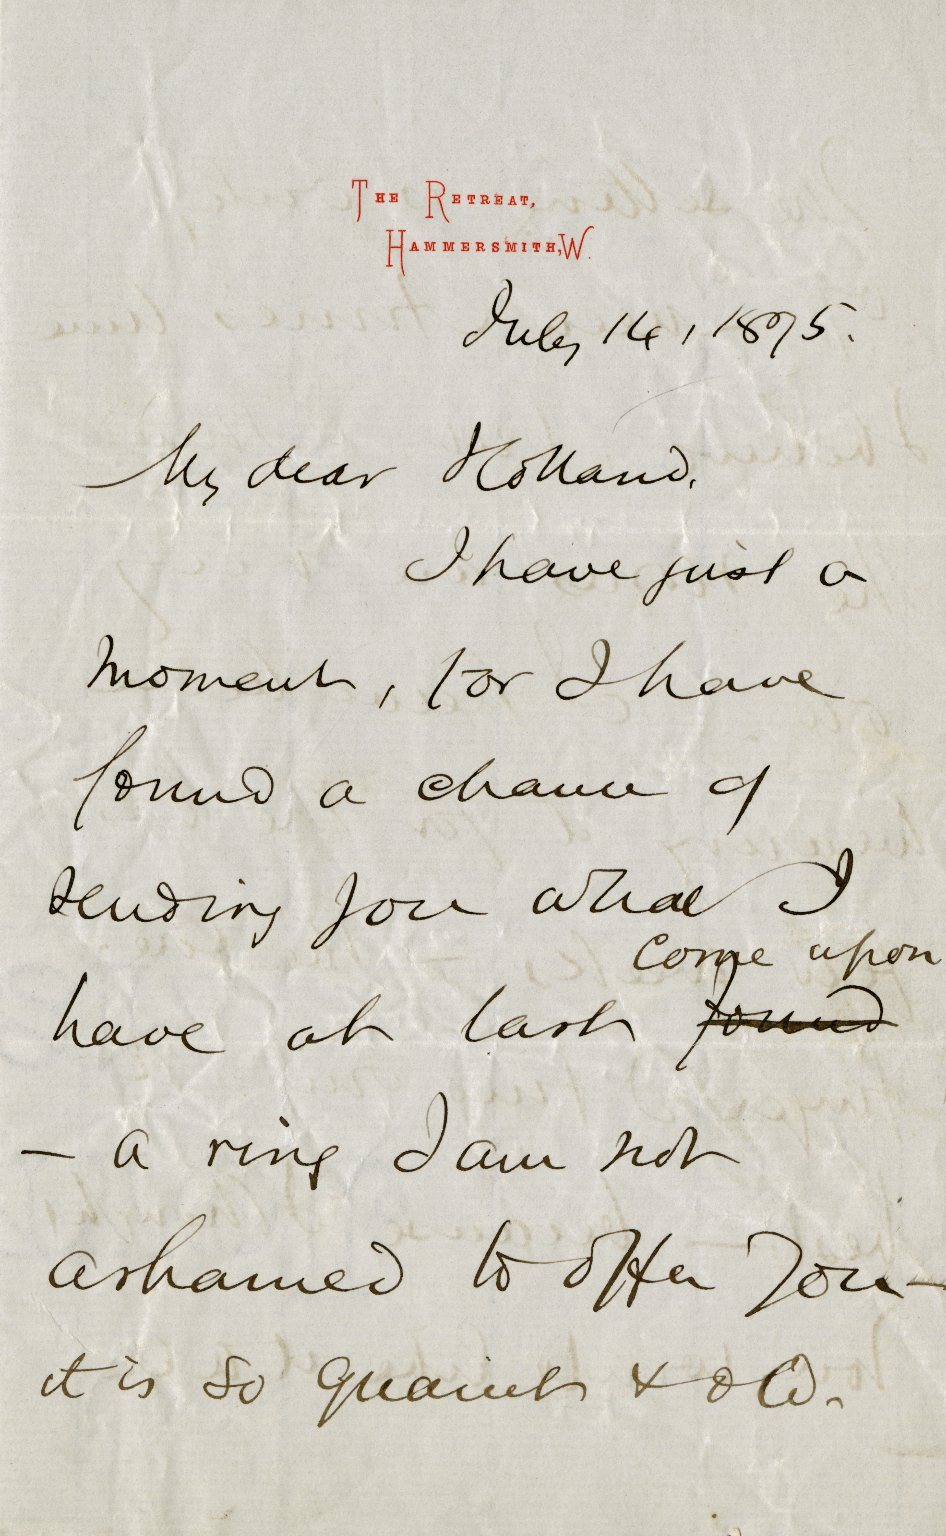 MacDonald, George. ALS, 4 pages, July 14, 1875.